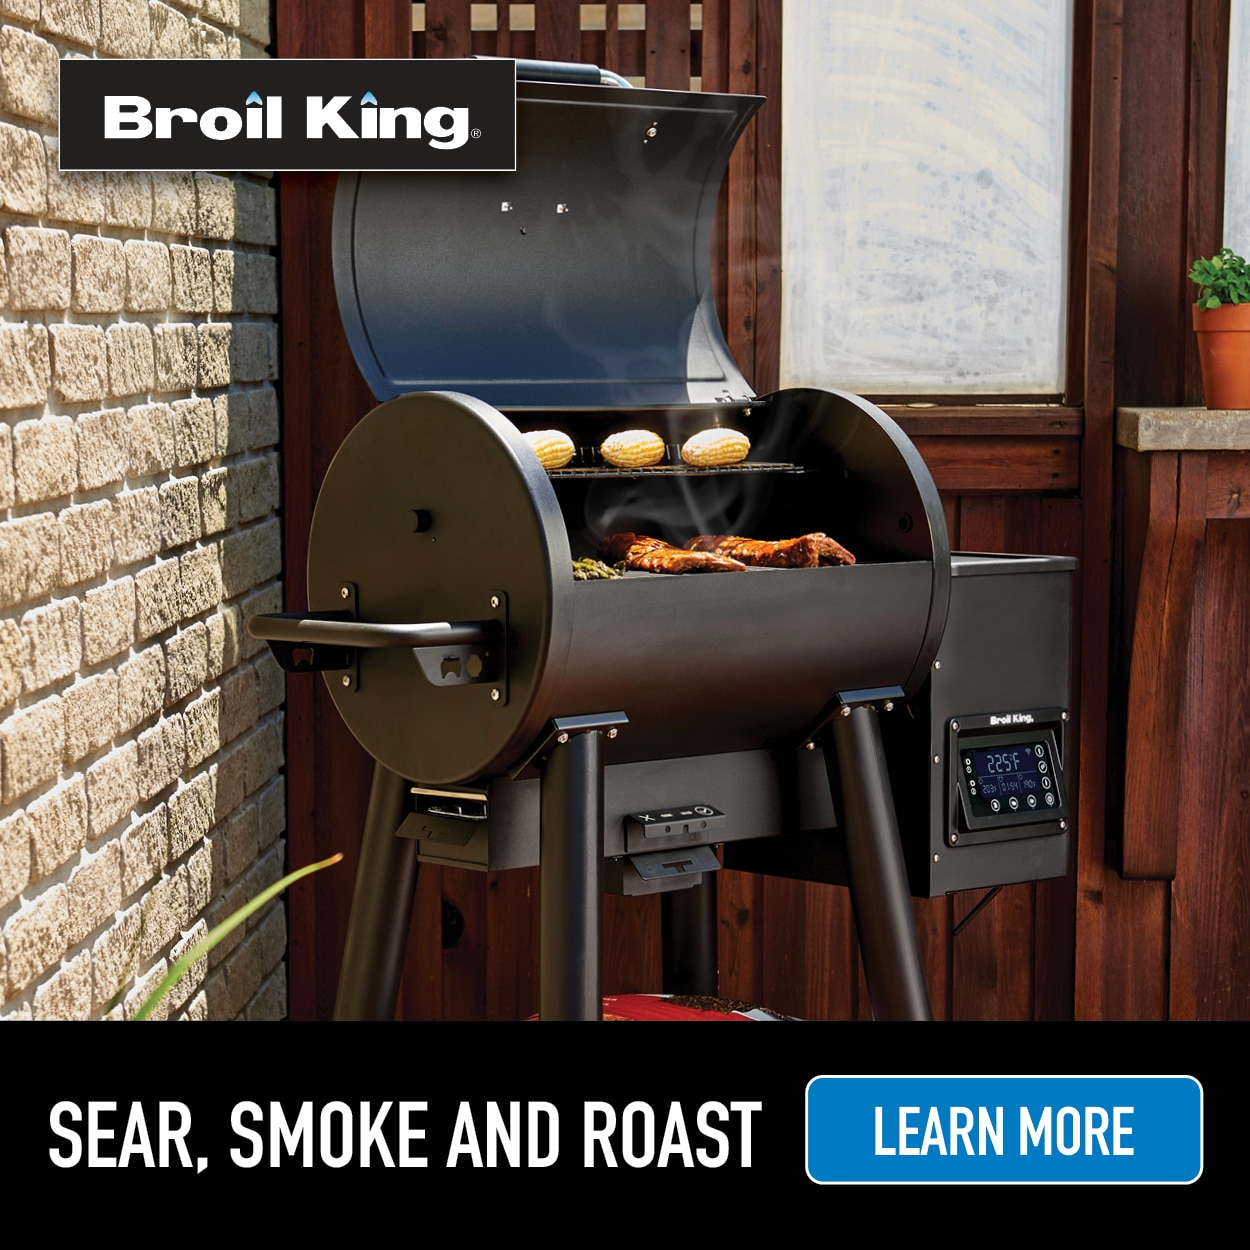 Broil King smoker